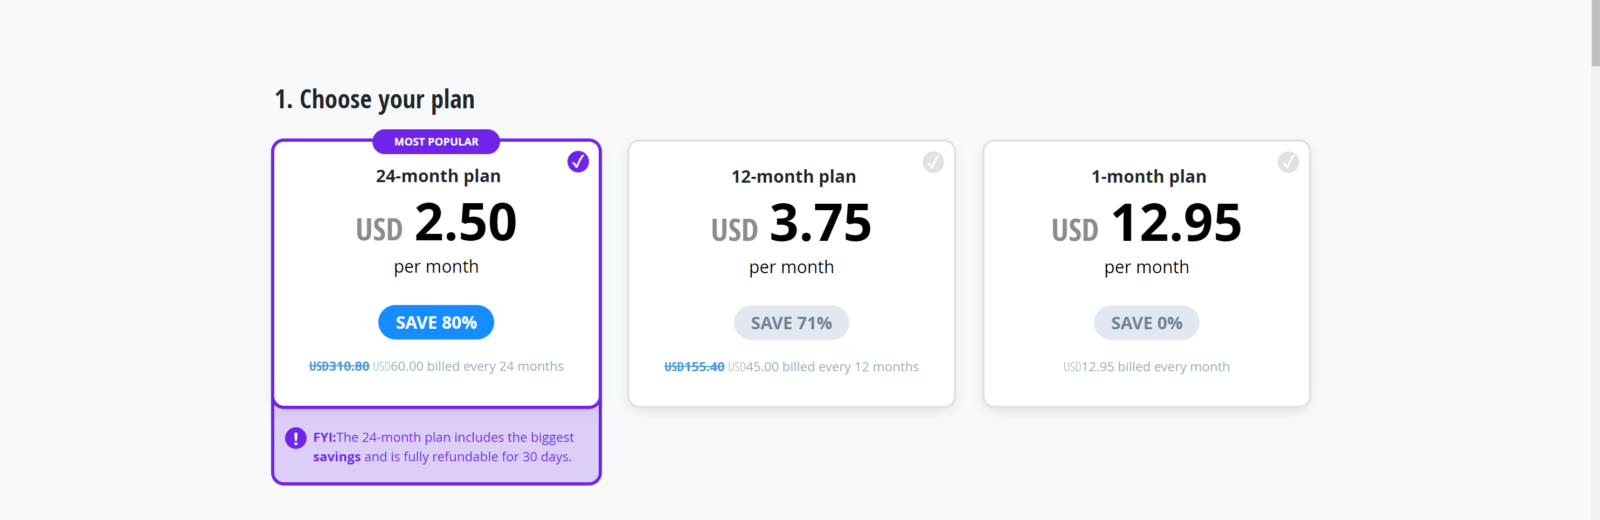 VyprVPN promo code activated for annual plan